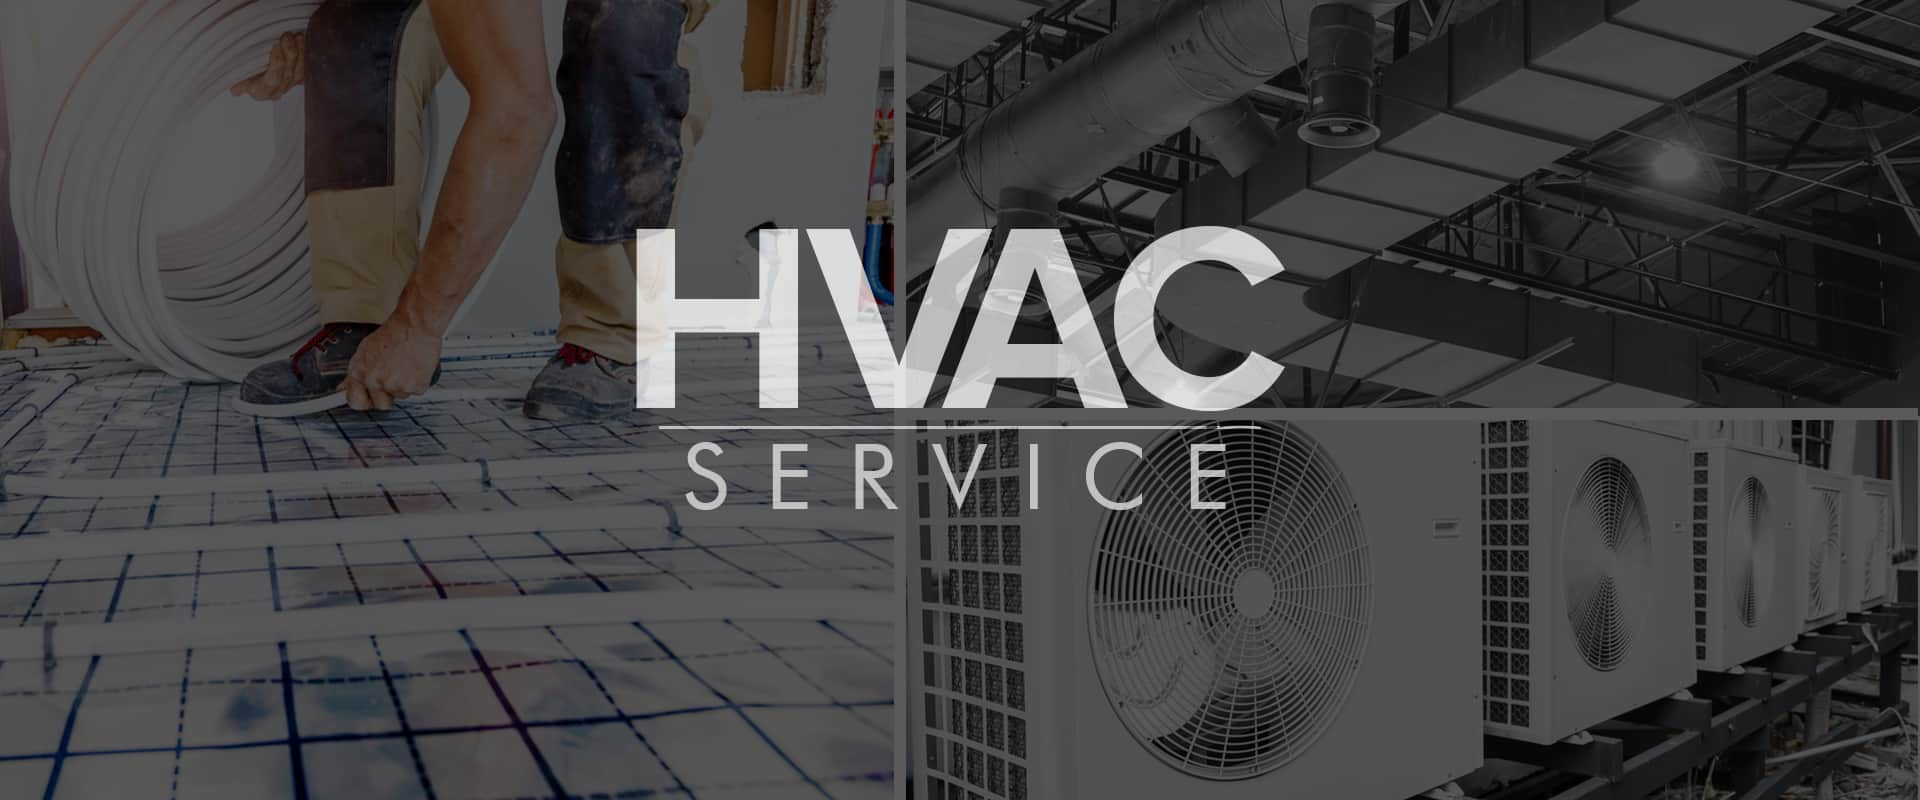 hvac-services-viratmep